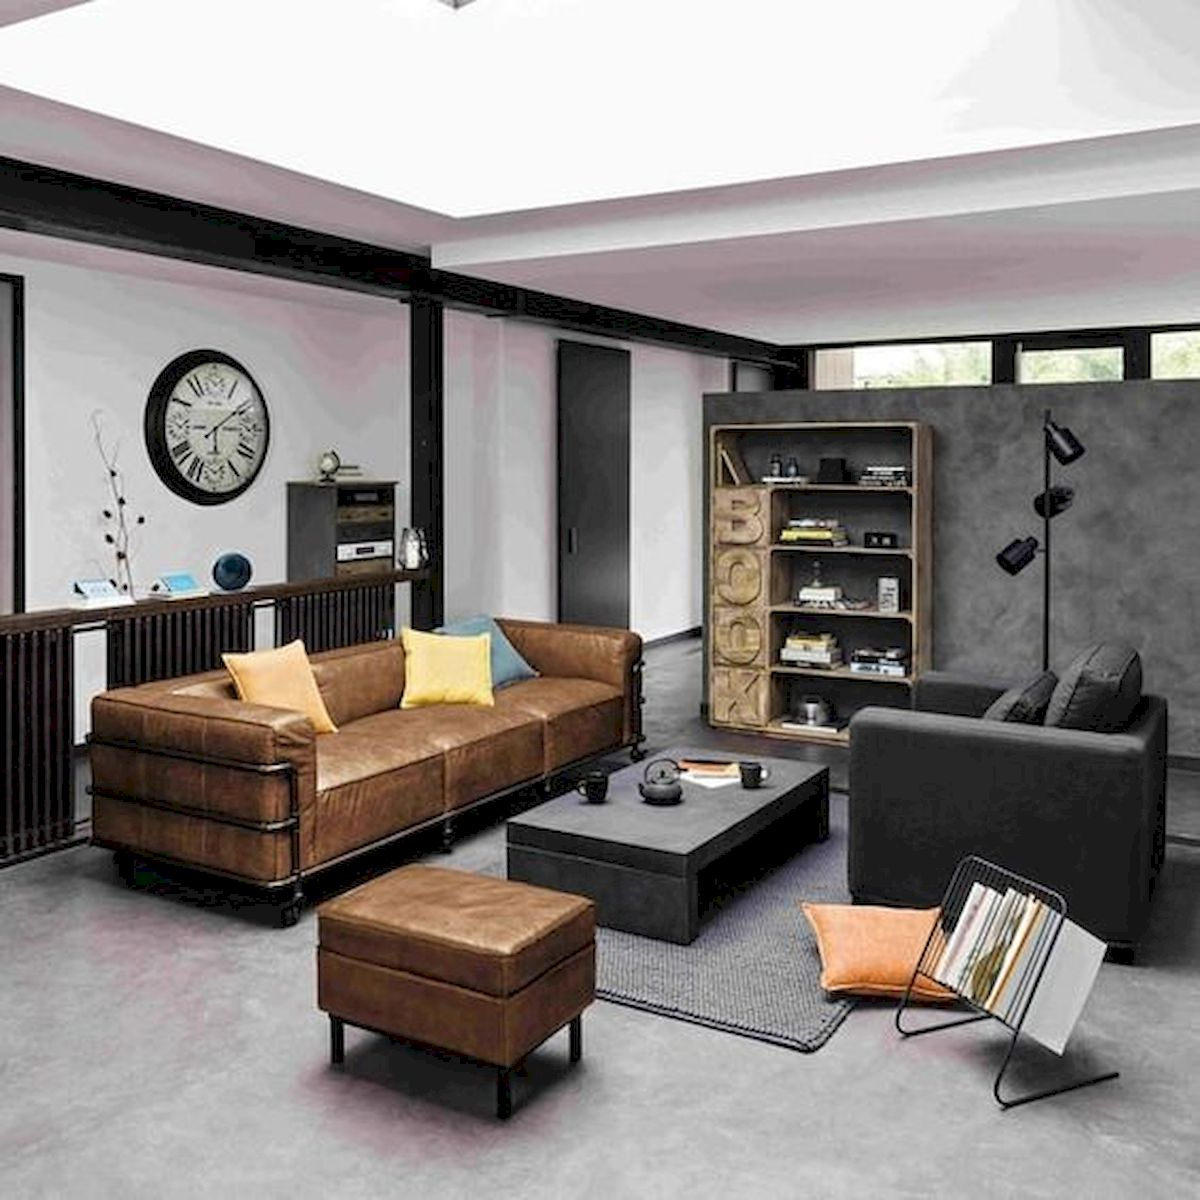 72 Industrial Living Room Decor Ideas